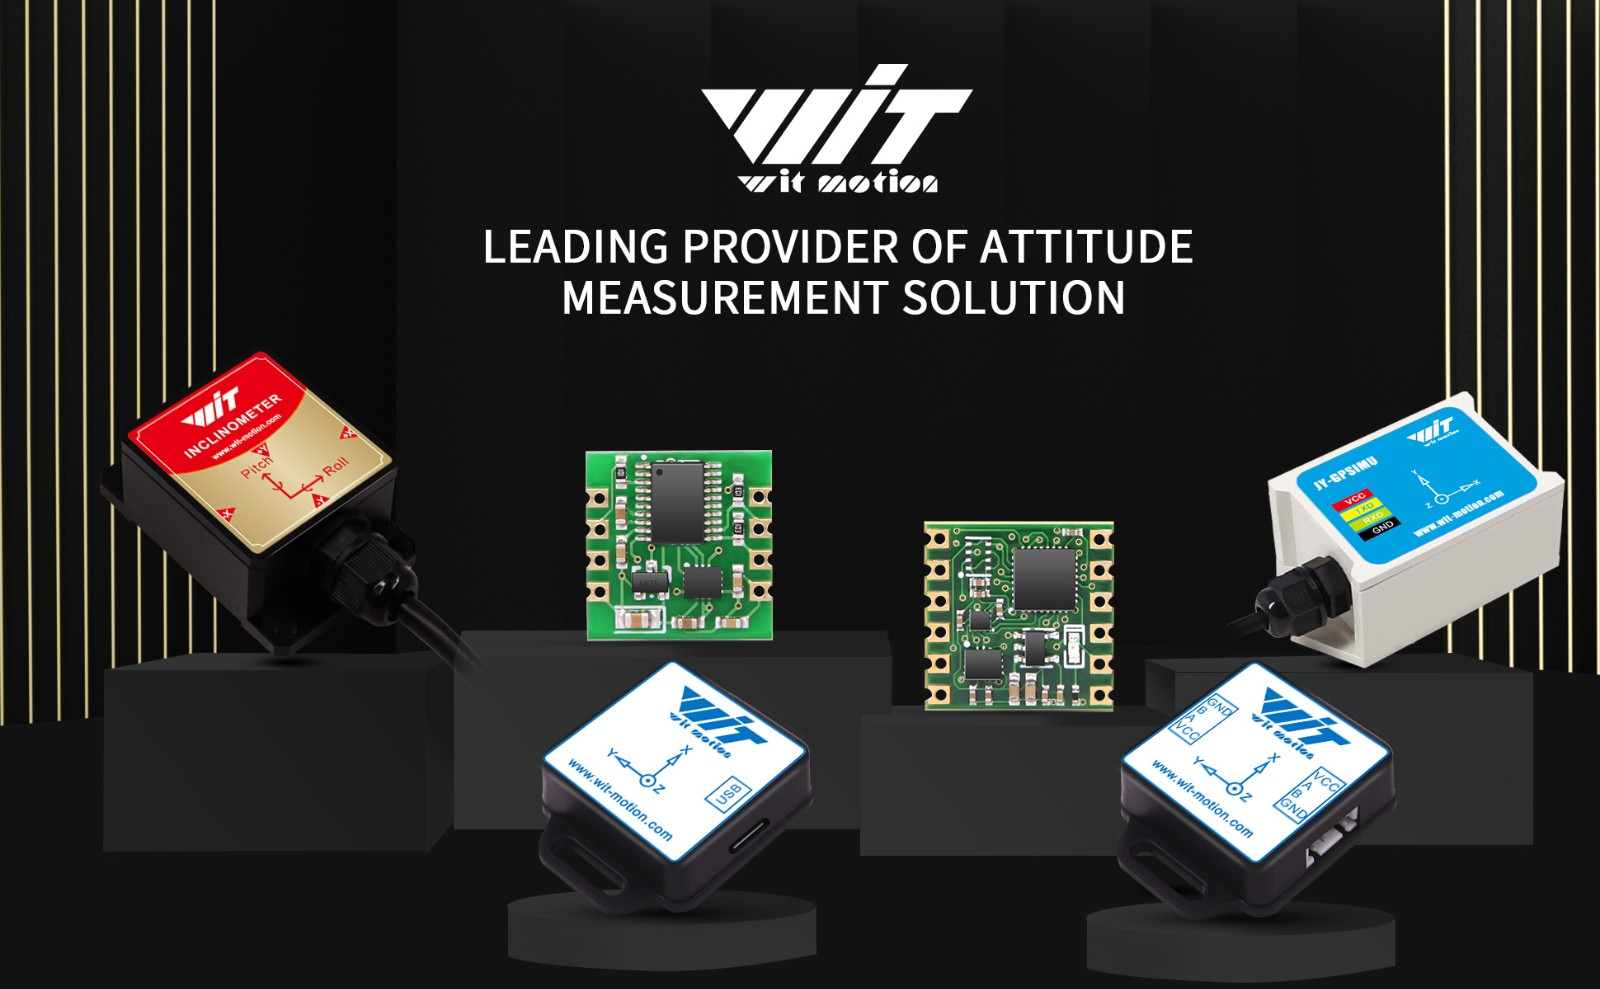 WitMotion WT901C TTL 9 Axis IMU Sensor Tilt Angle Roll Pitch Yaw   Acceleration   Gyroscope   Magnetometer MPU9250 on PC/Android/MCU